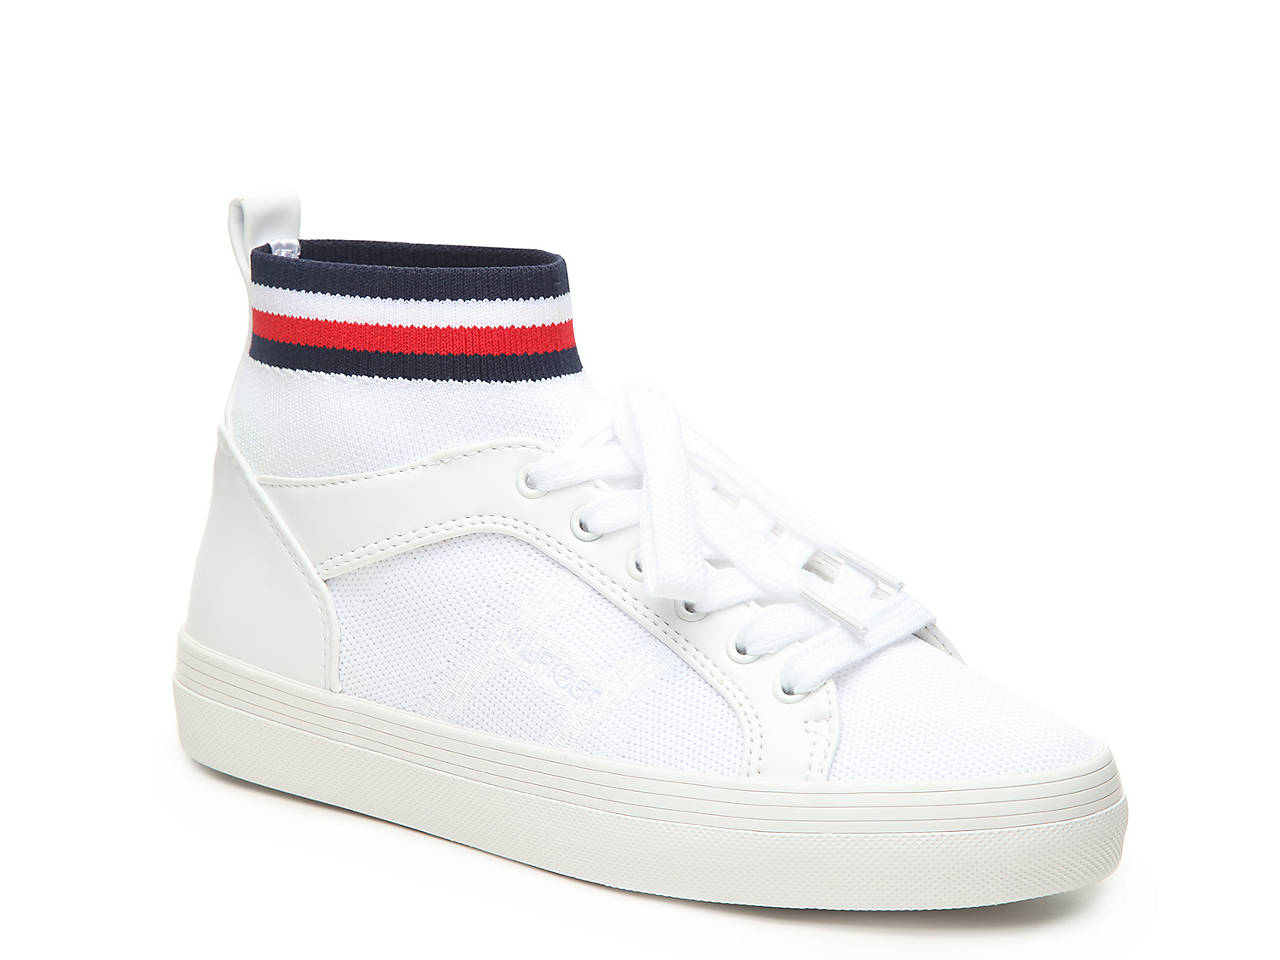 24052f274faacd Tommy Hilfiger Fether High-Top Sneaker Women s Shoes